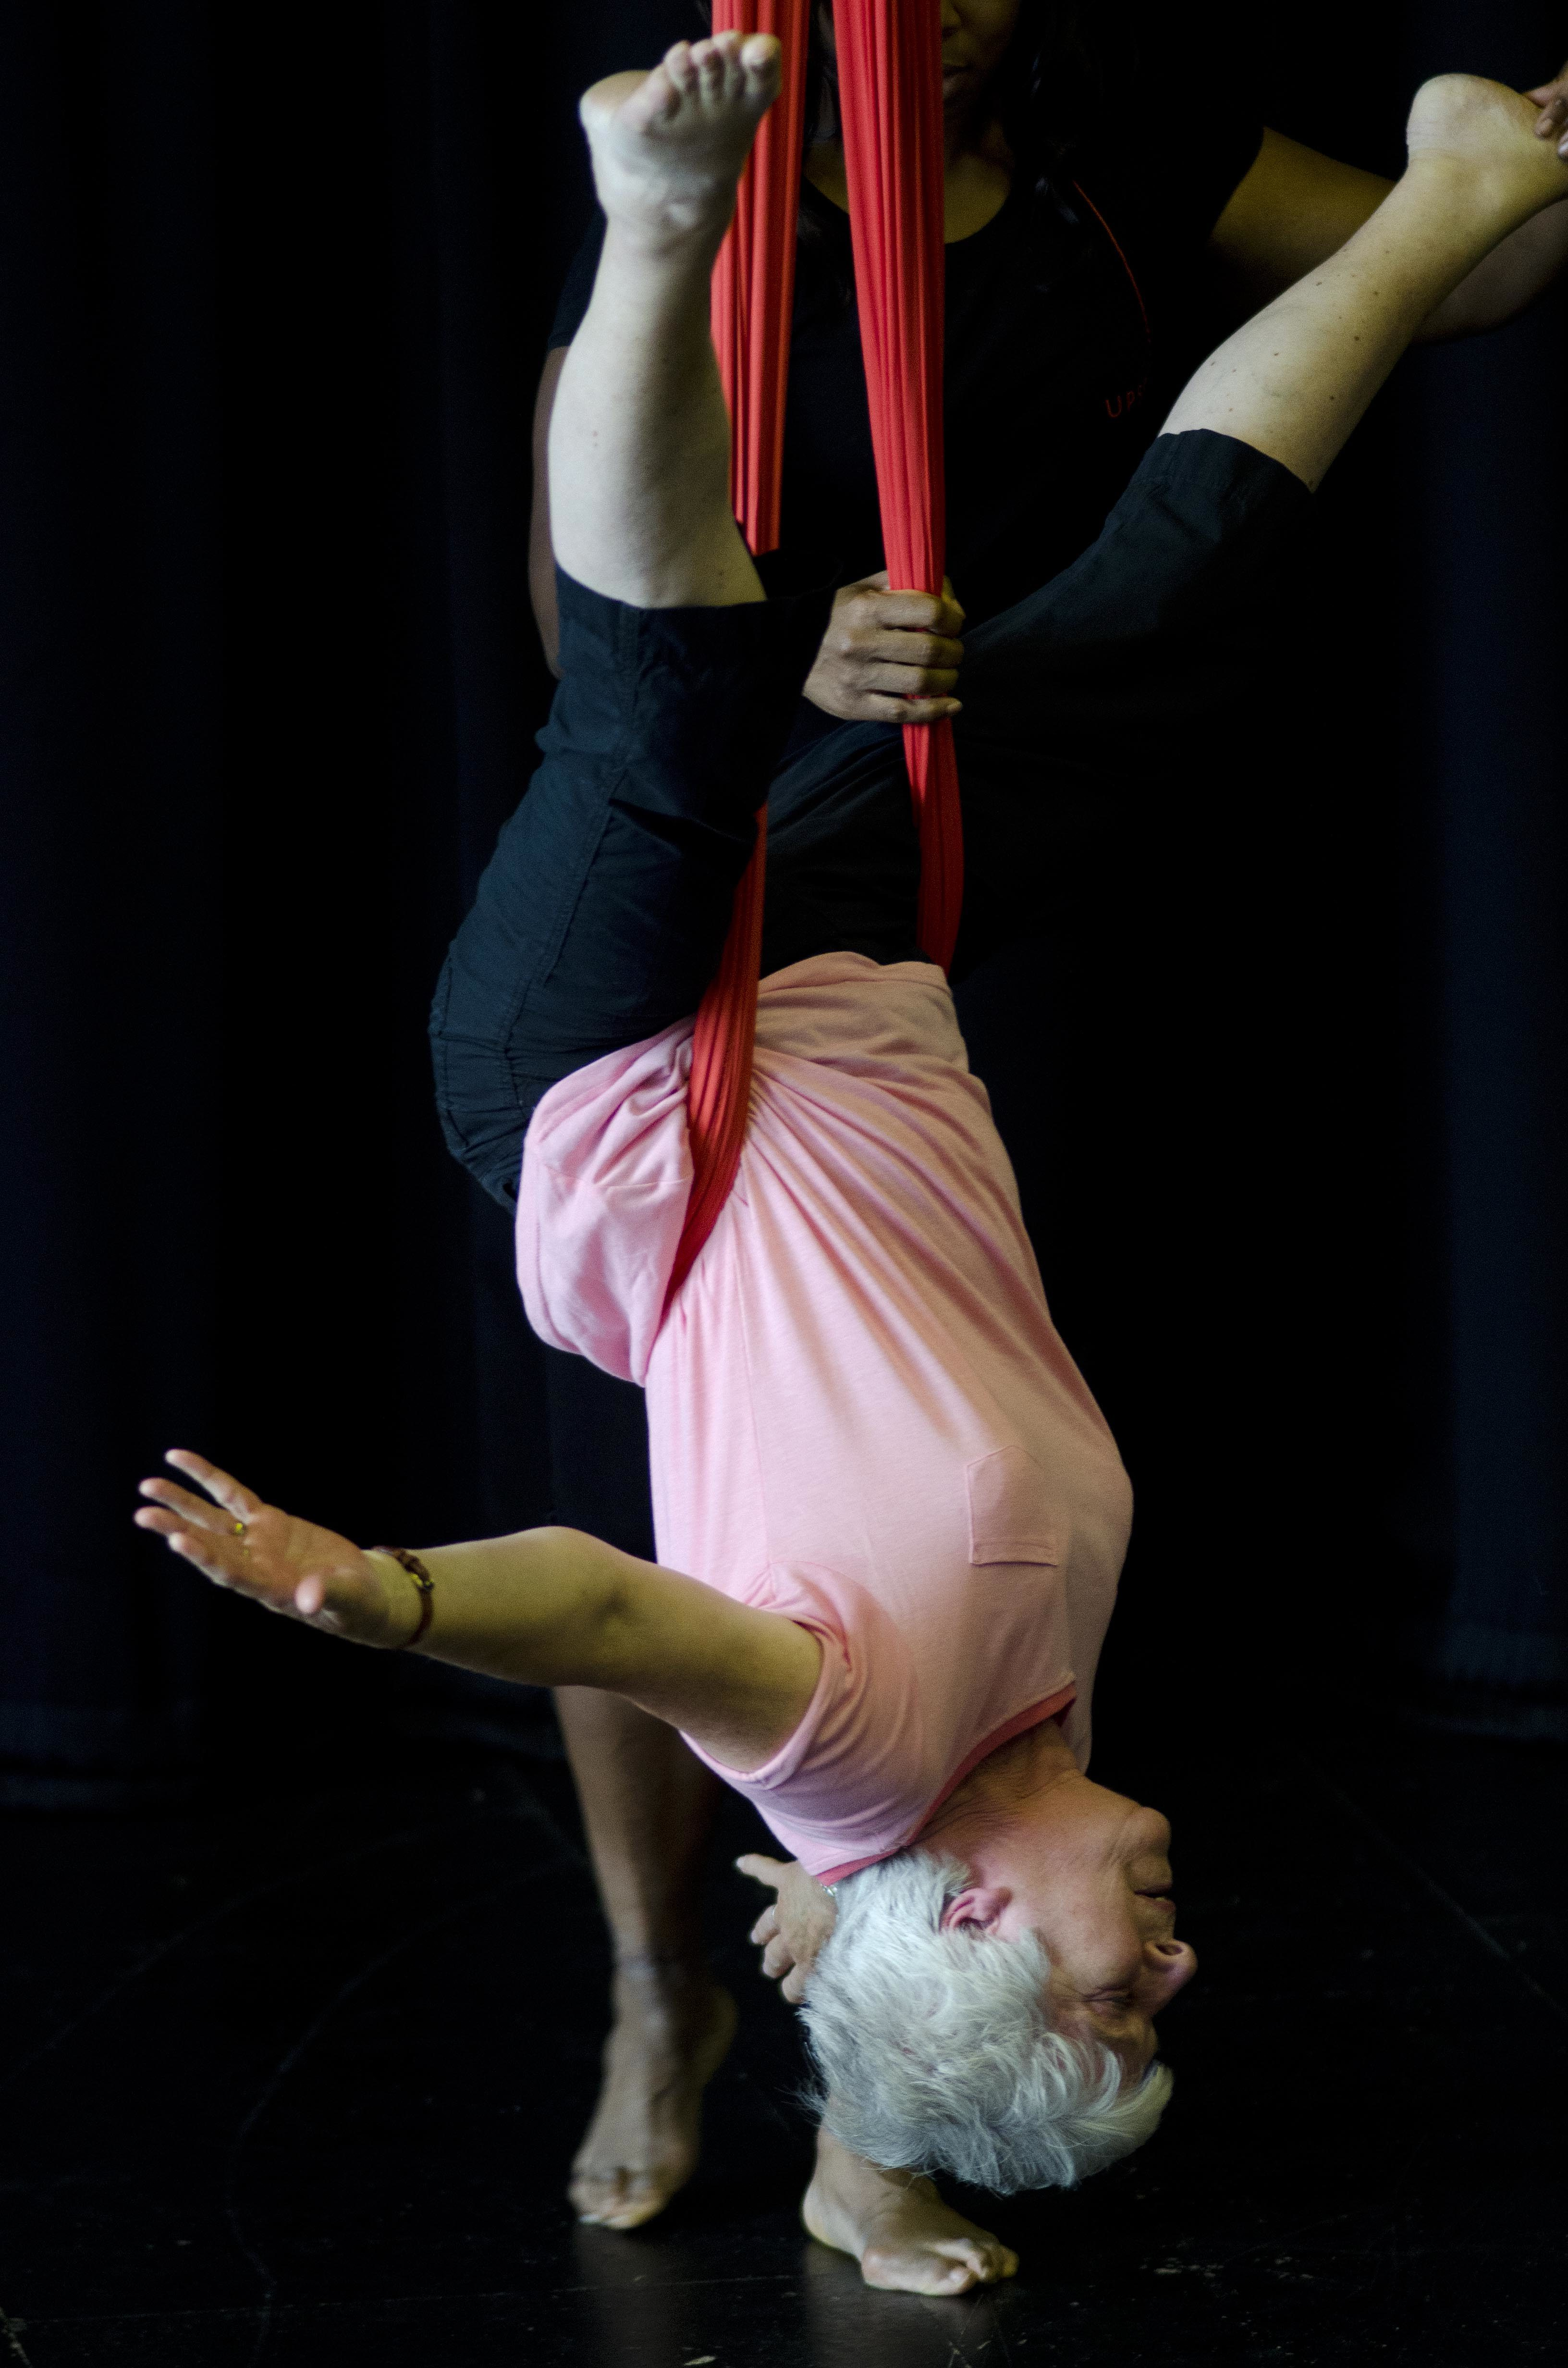 An older woman is held up on silk ropes upside down.